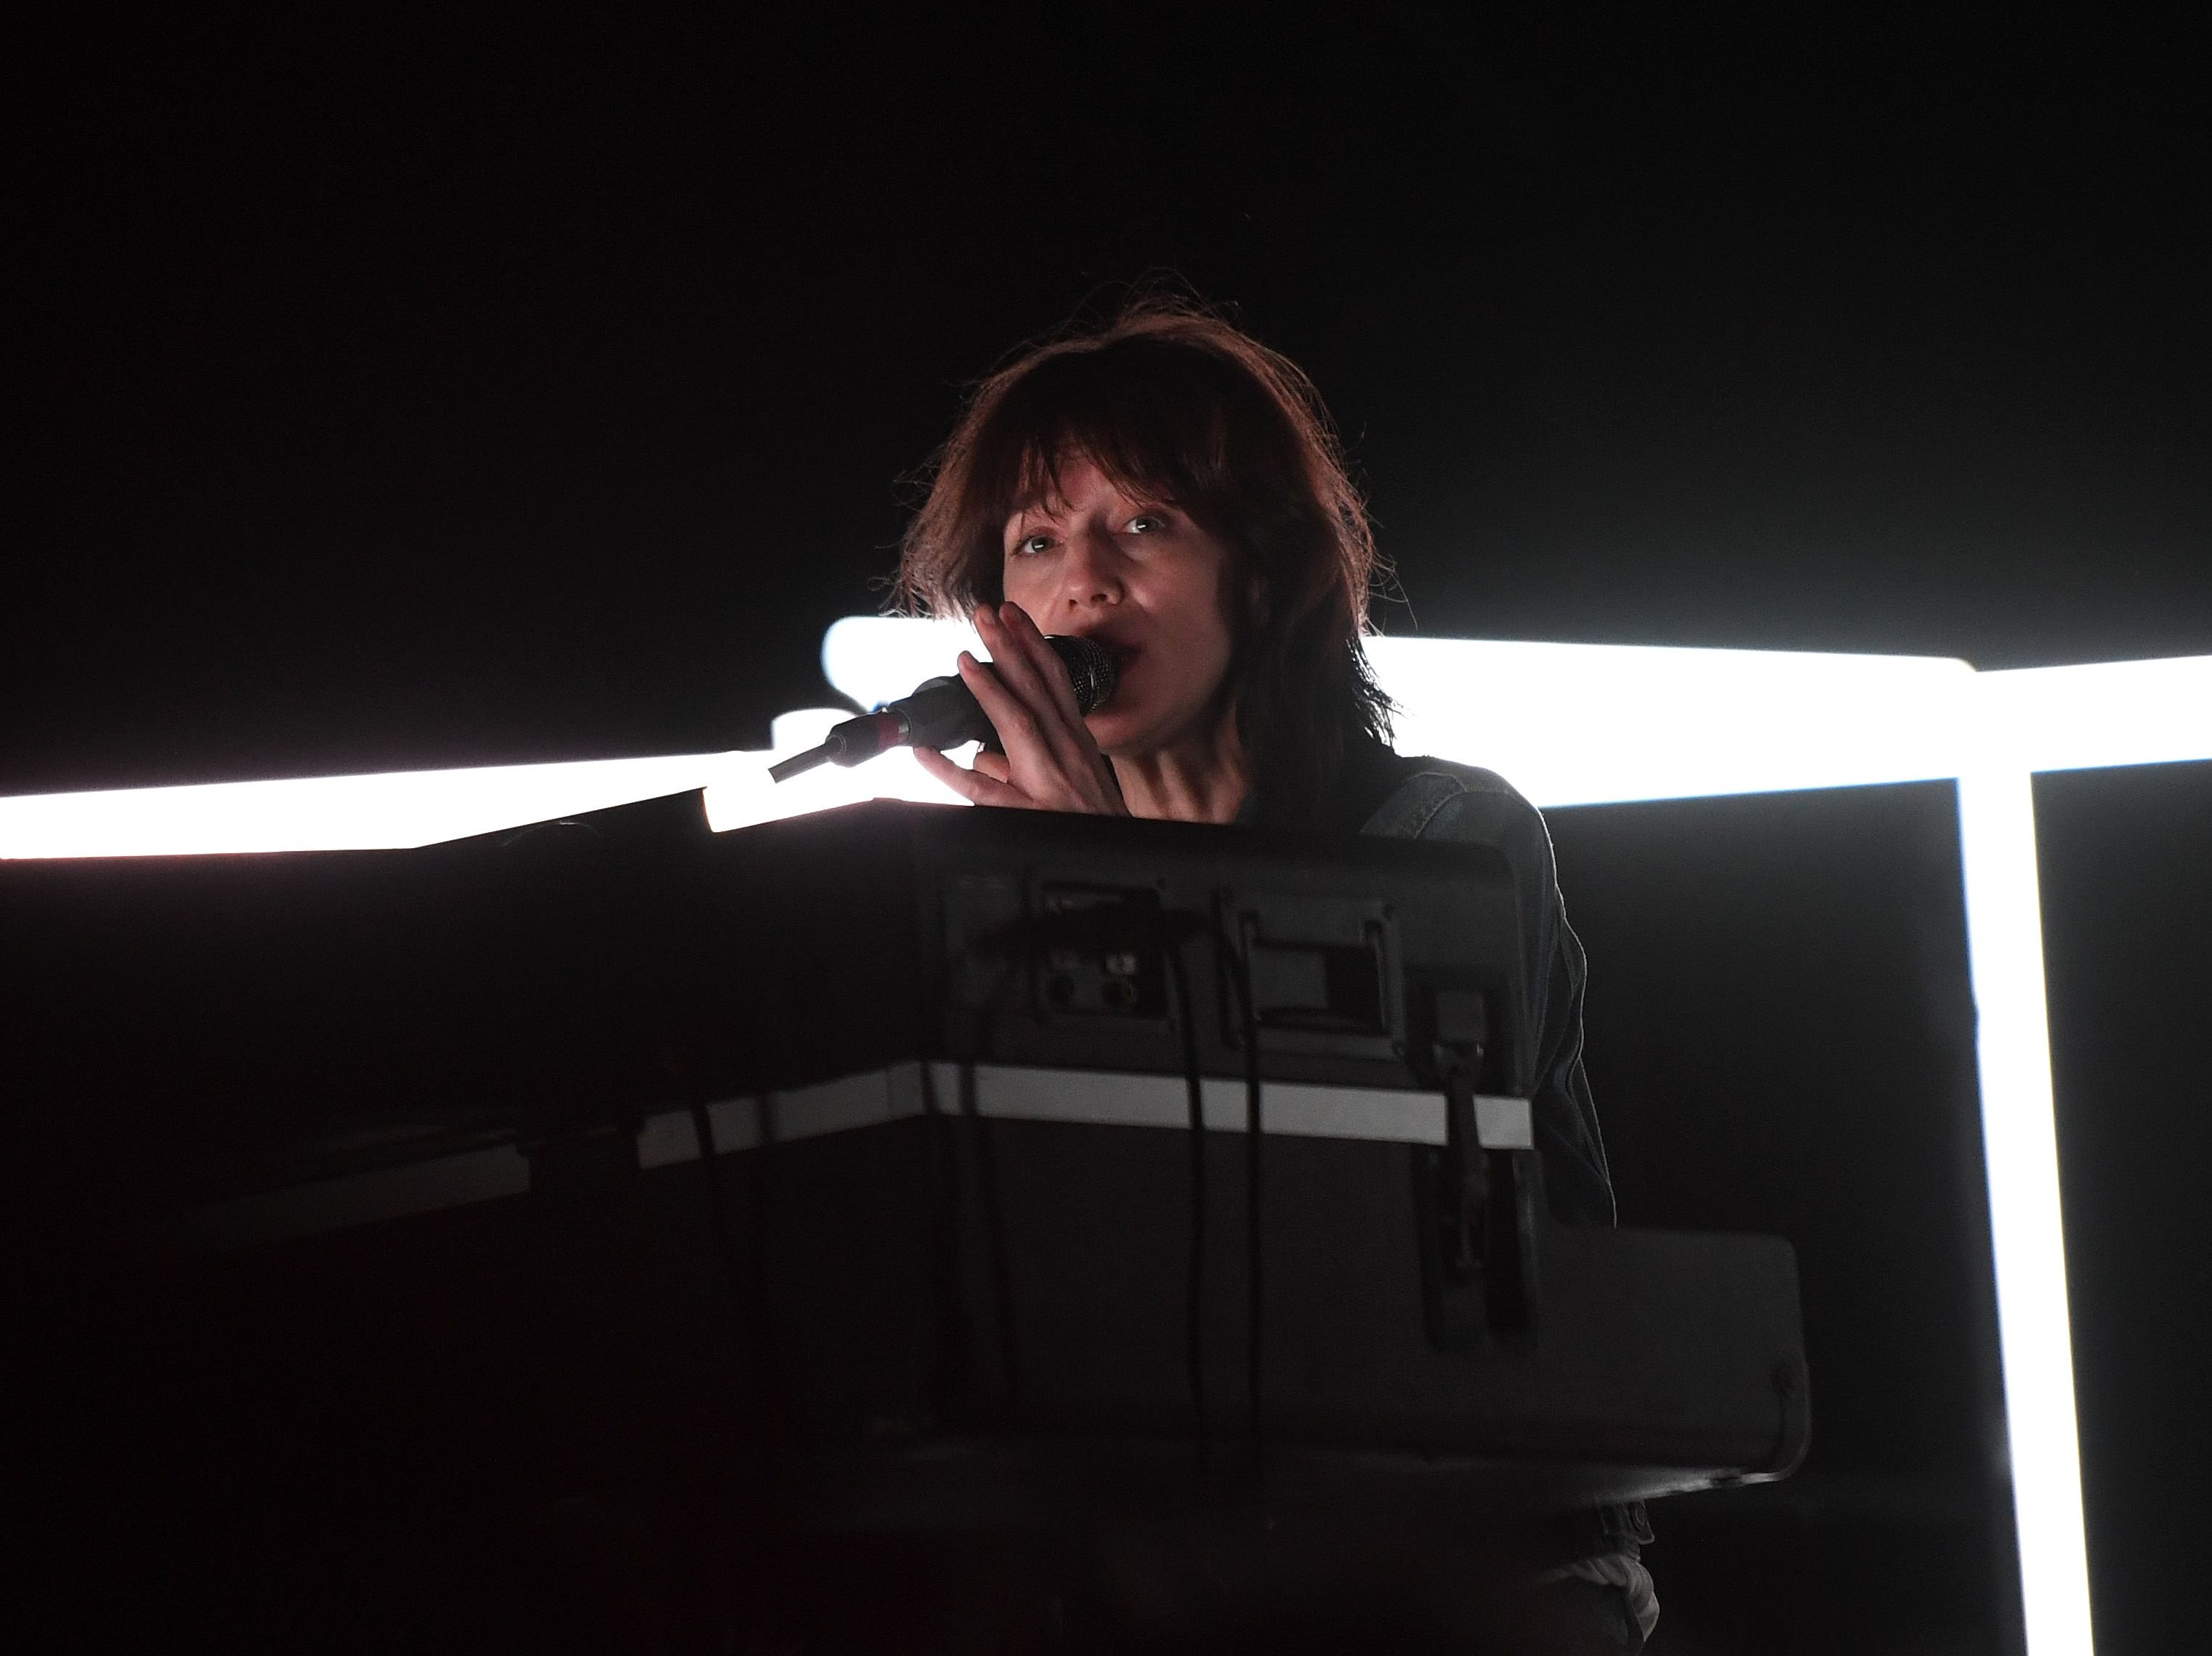 British-French actress and singer Charlotte Gainsbourg performs onstage at the Coachella Valley Music and Arts Festival on April 12, 2019 in Indio, California. (Photo by VALERIE MACON / AFP)VALERIE MACON/AFP/Getty Images ORIG FILE ID: AFP_1FM0QQ